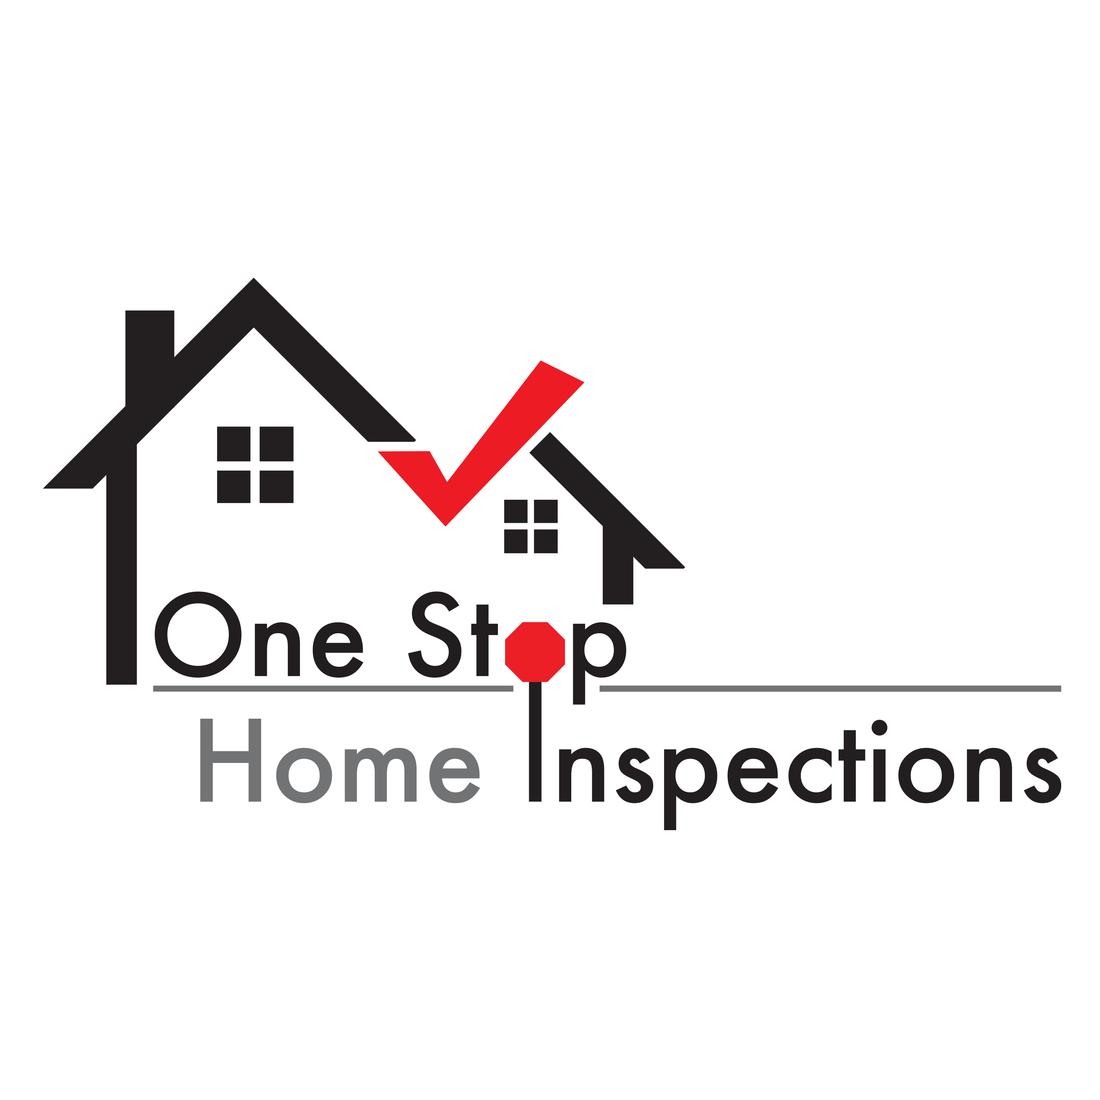 One Stop Home Inspections